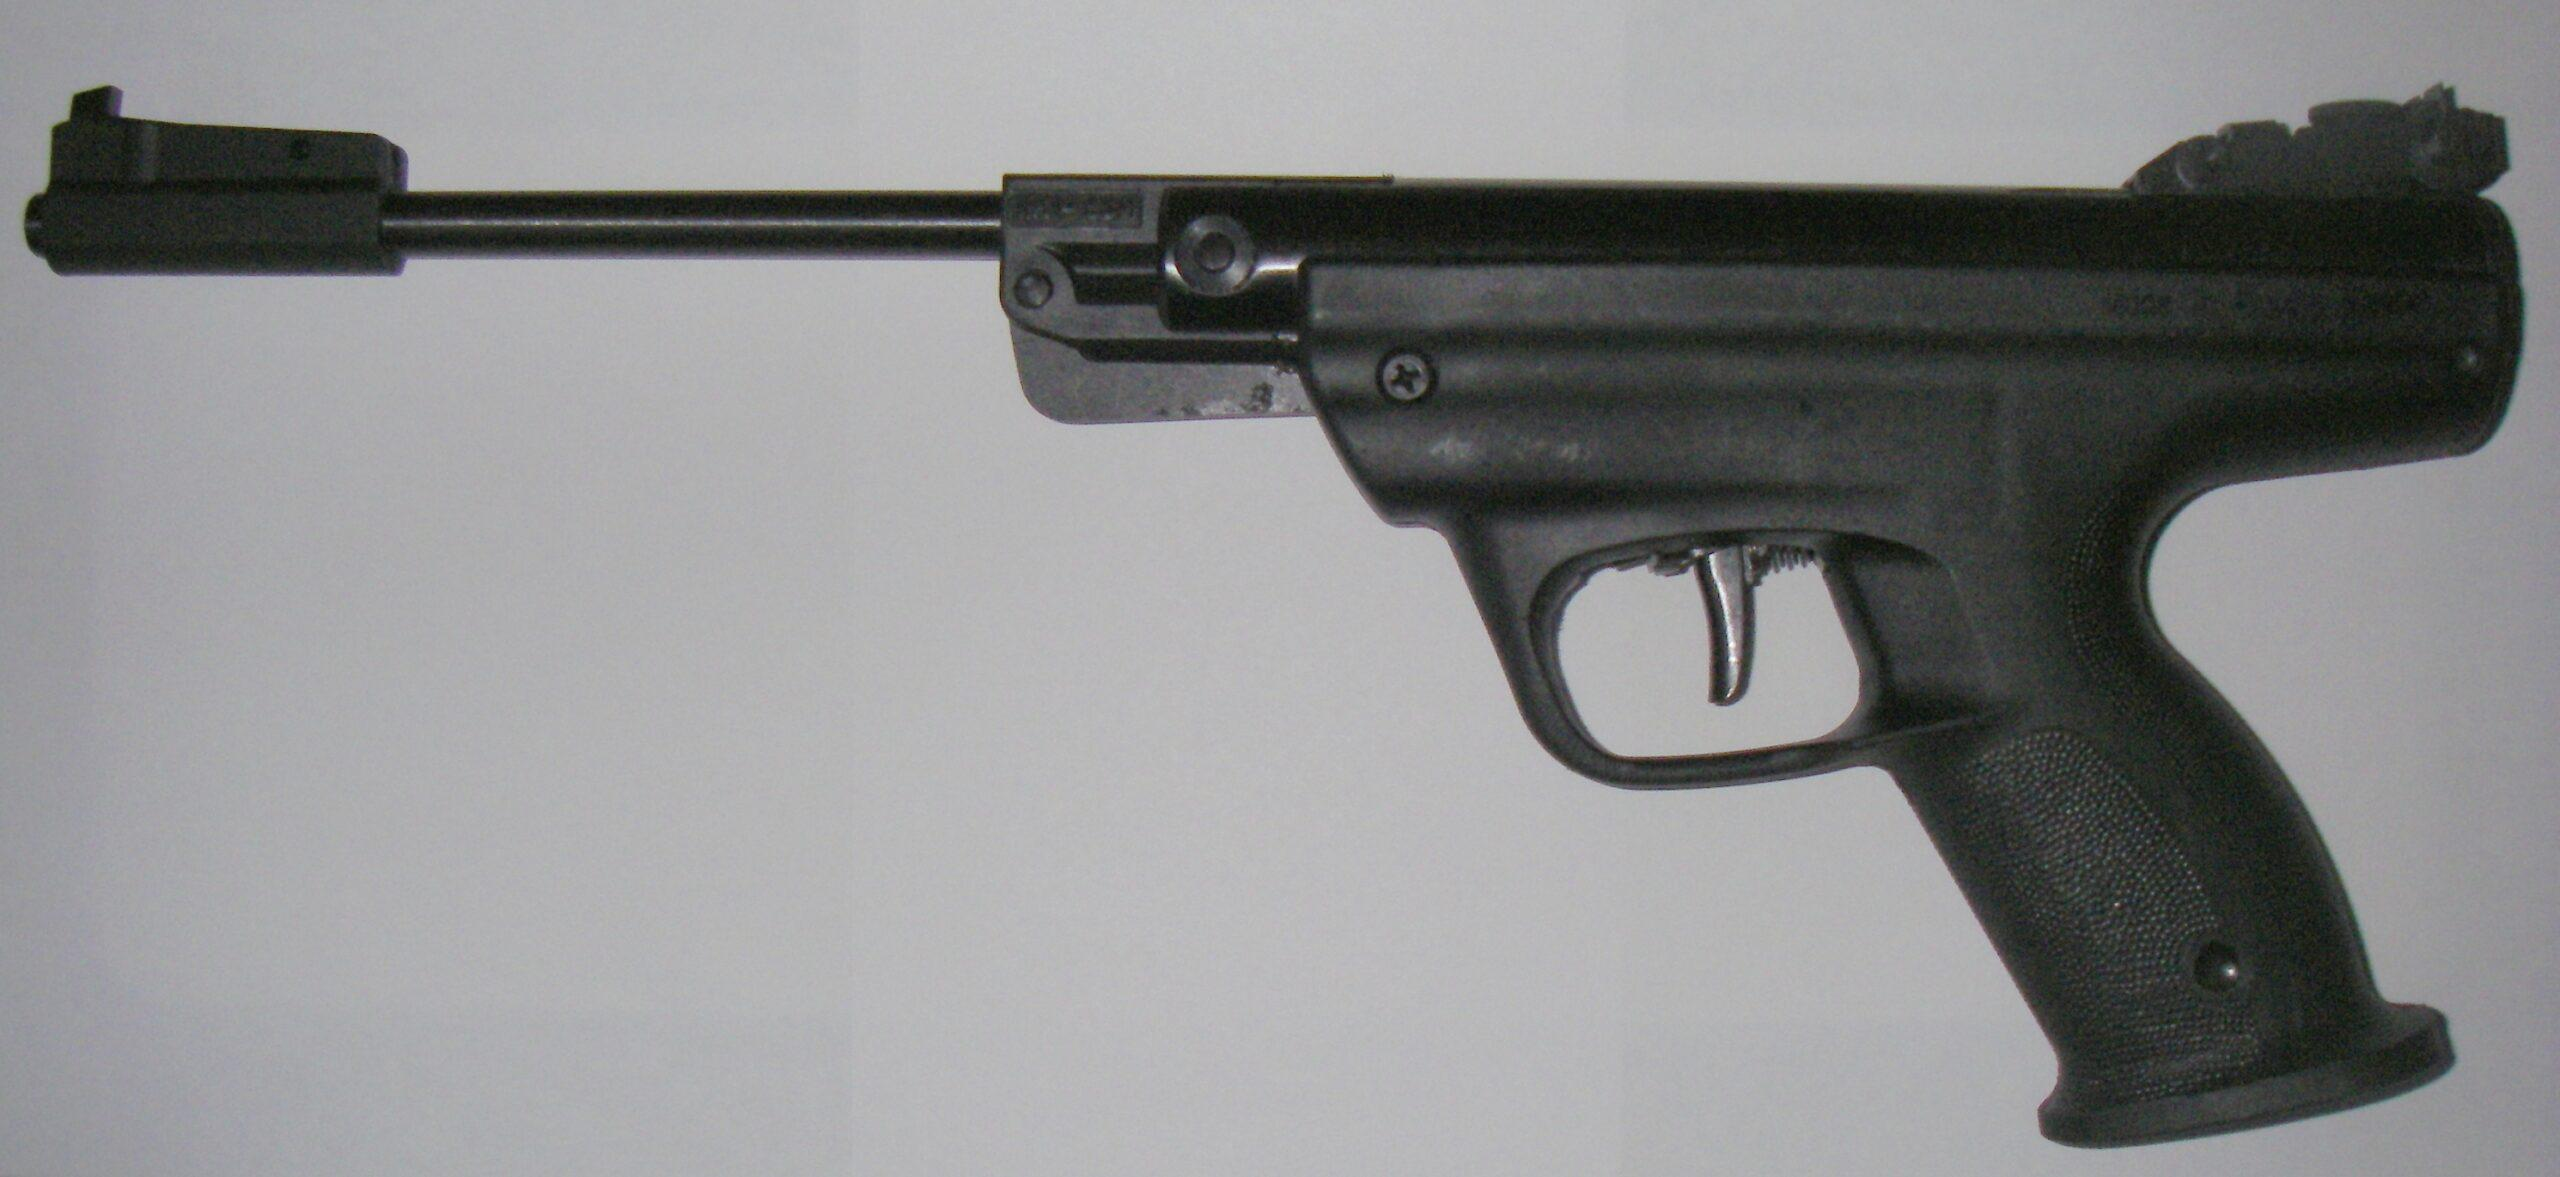 Иж-53м